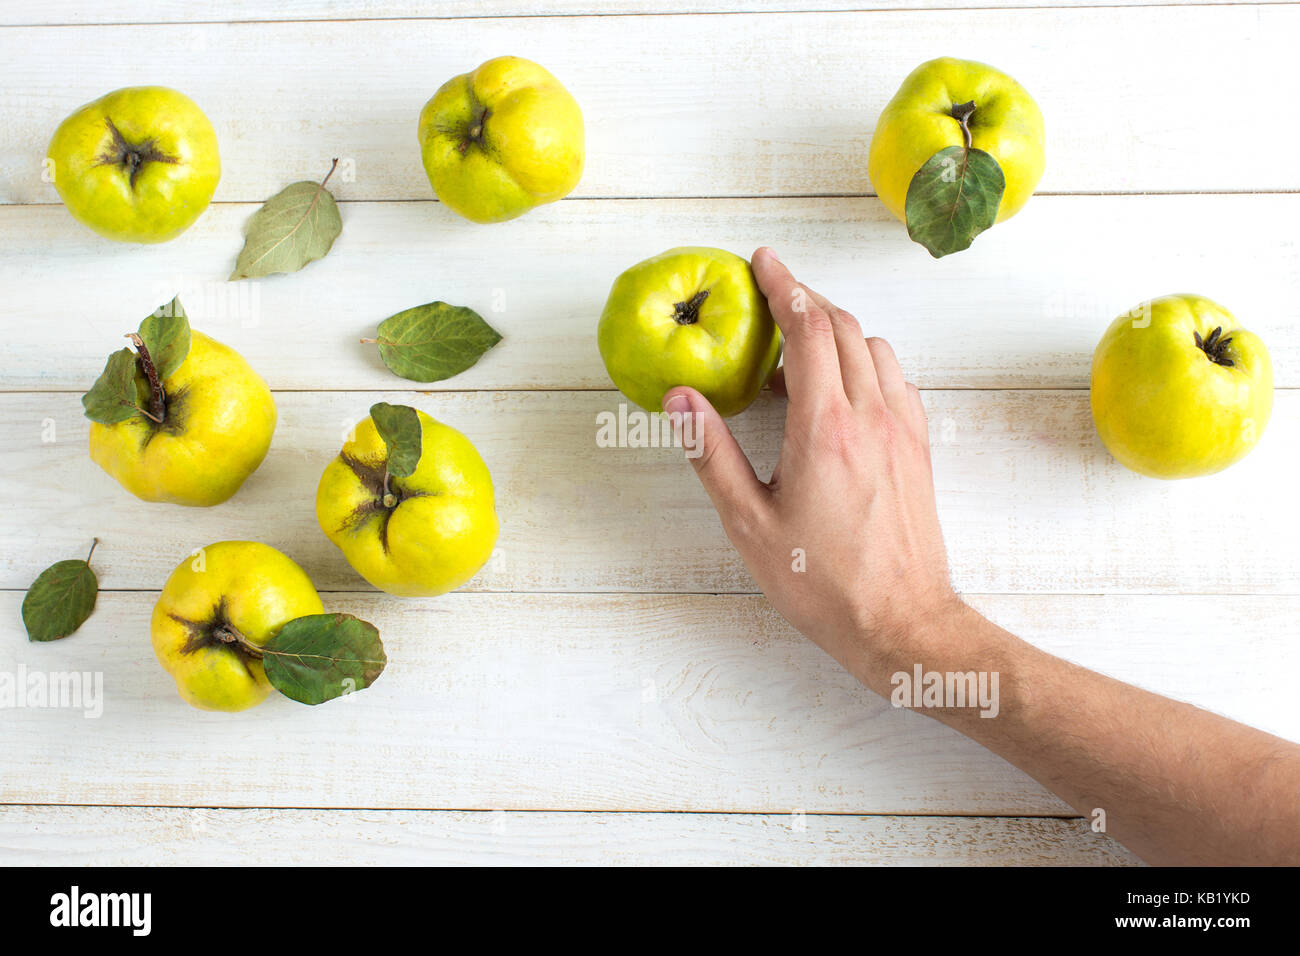 harvesting, autumn, entertainment concept. delicate hand of caucasian man touching yellow green fruits that was - Stock Image